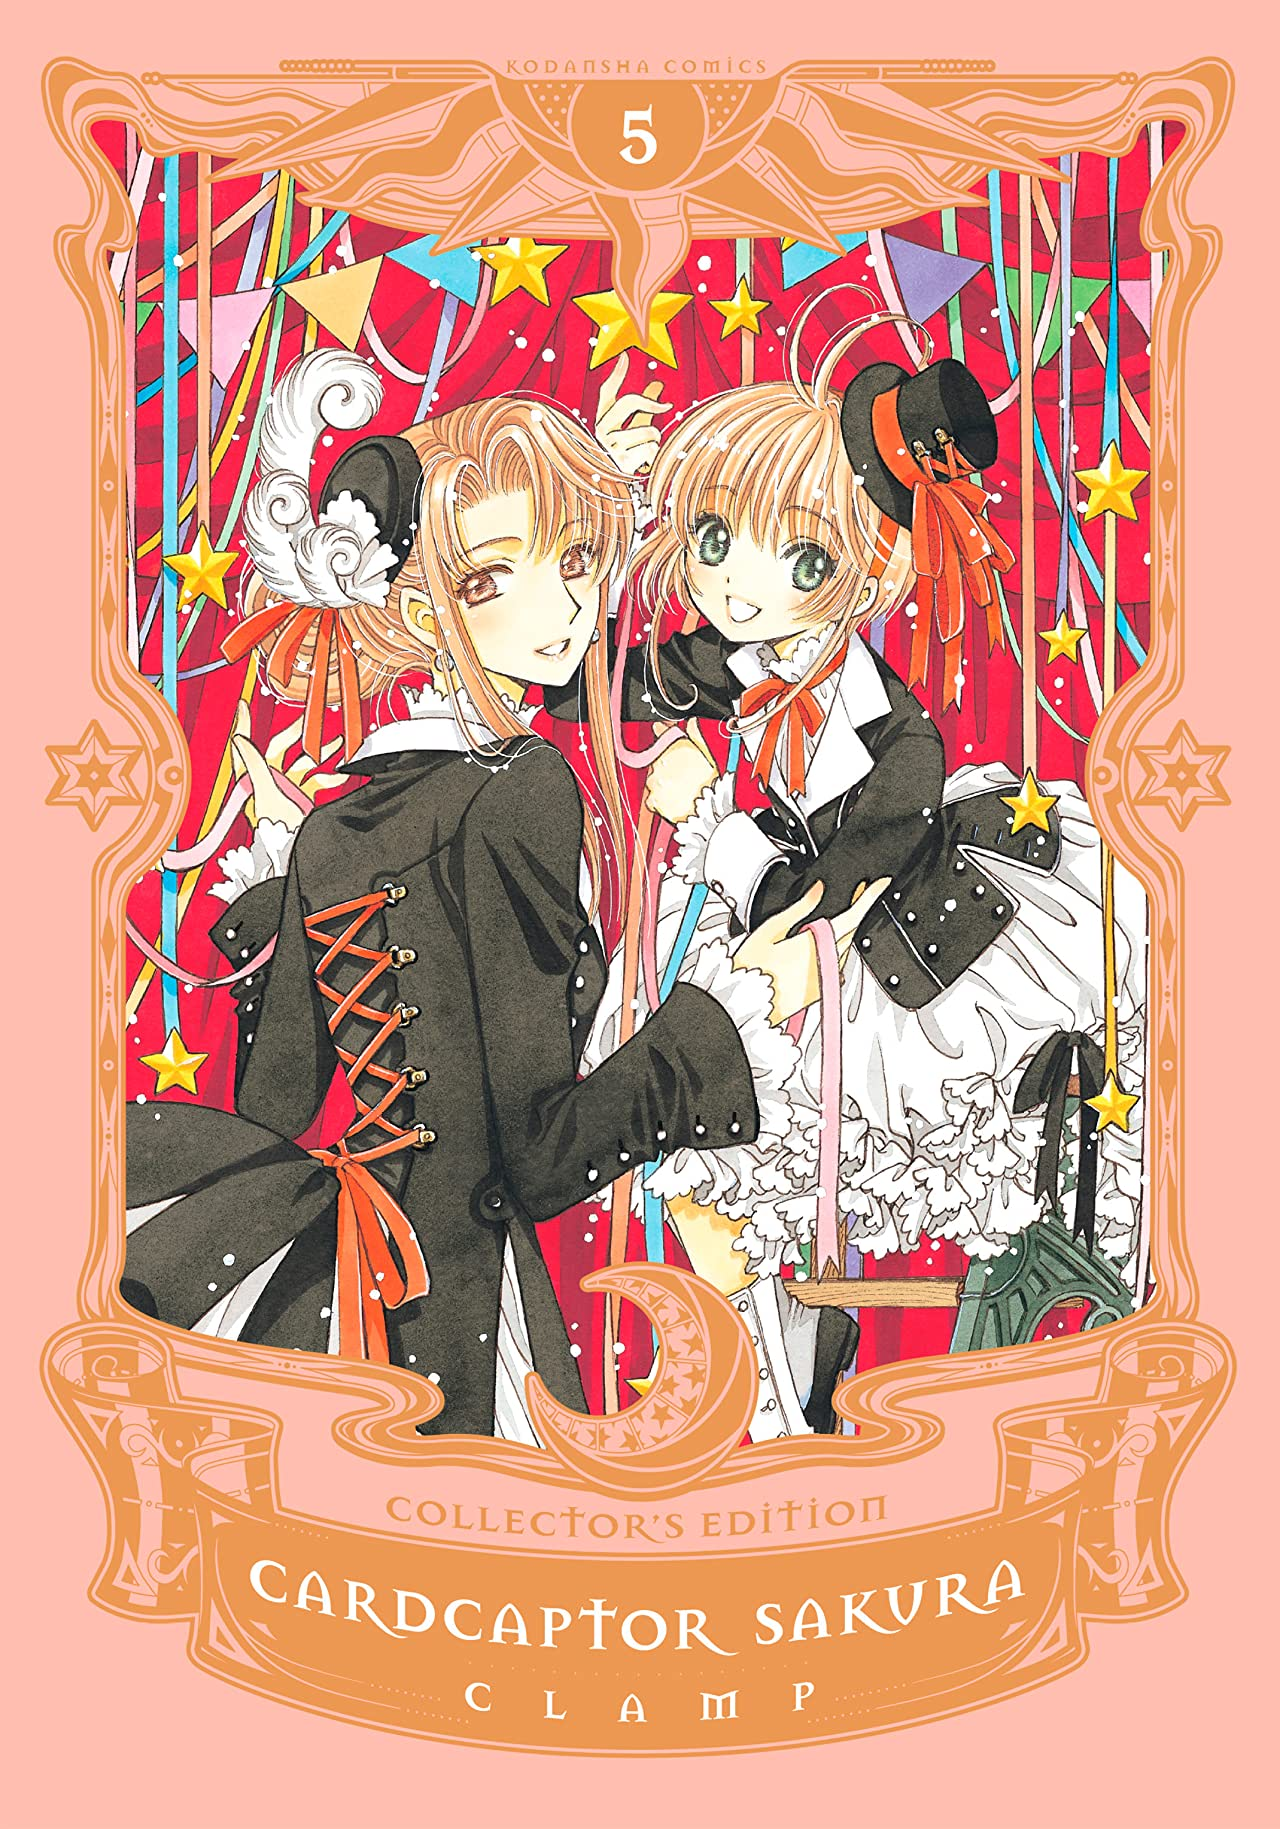 Cardcaptor Sakura Collector's Edition Vol. 5